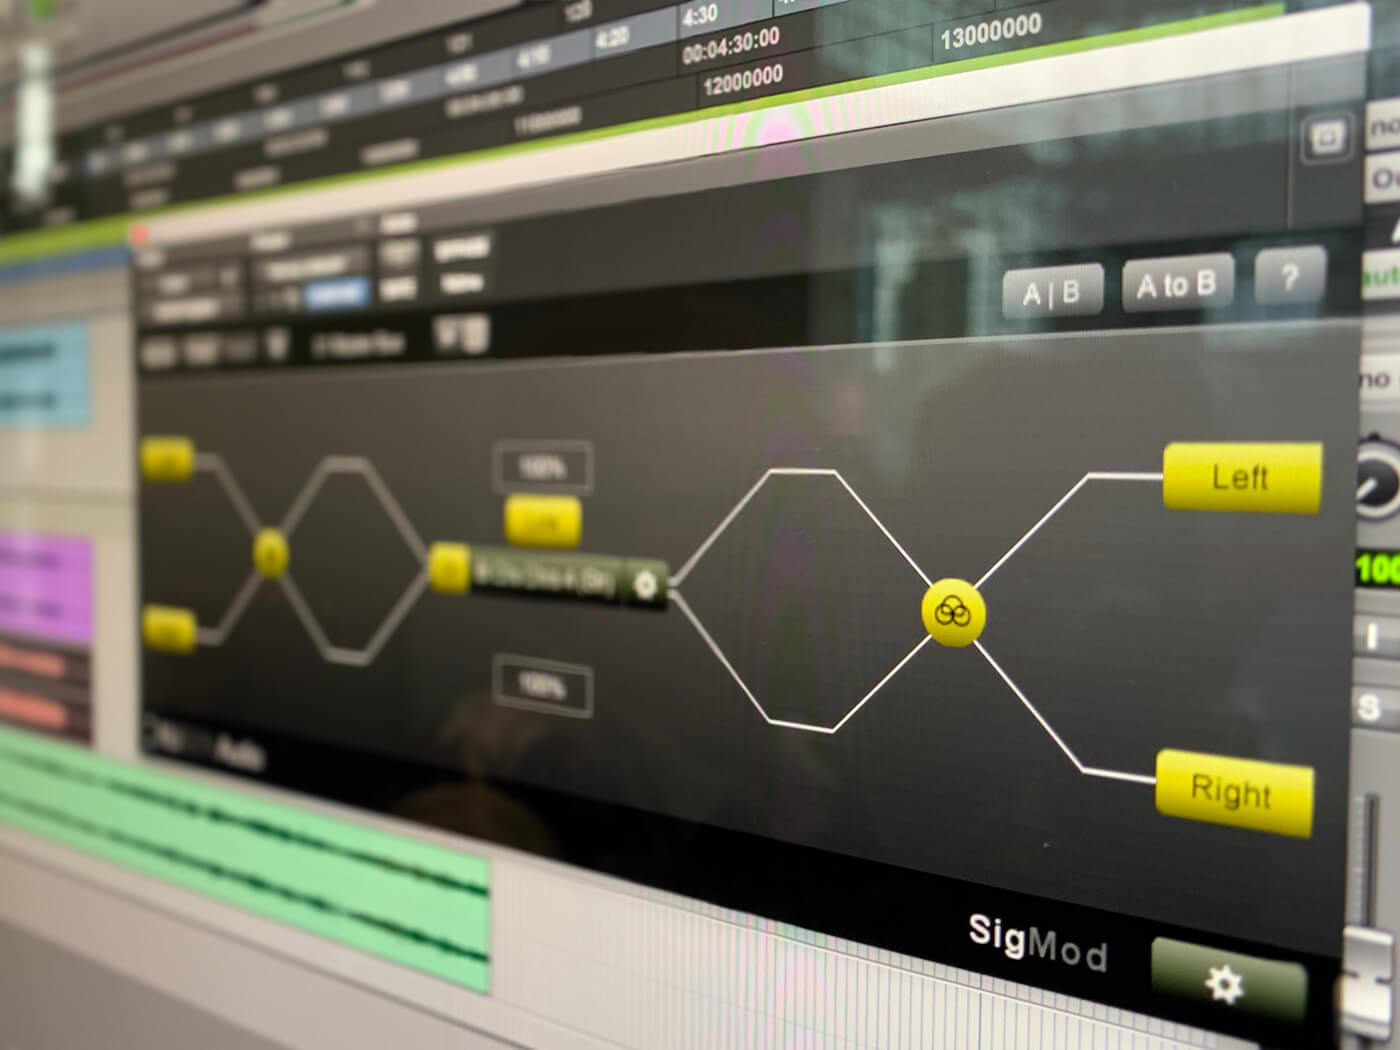 Nugen Audio SigMod VST 2 Update at AES